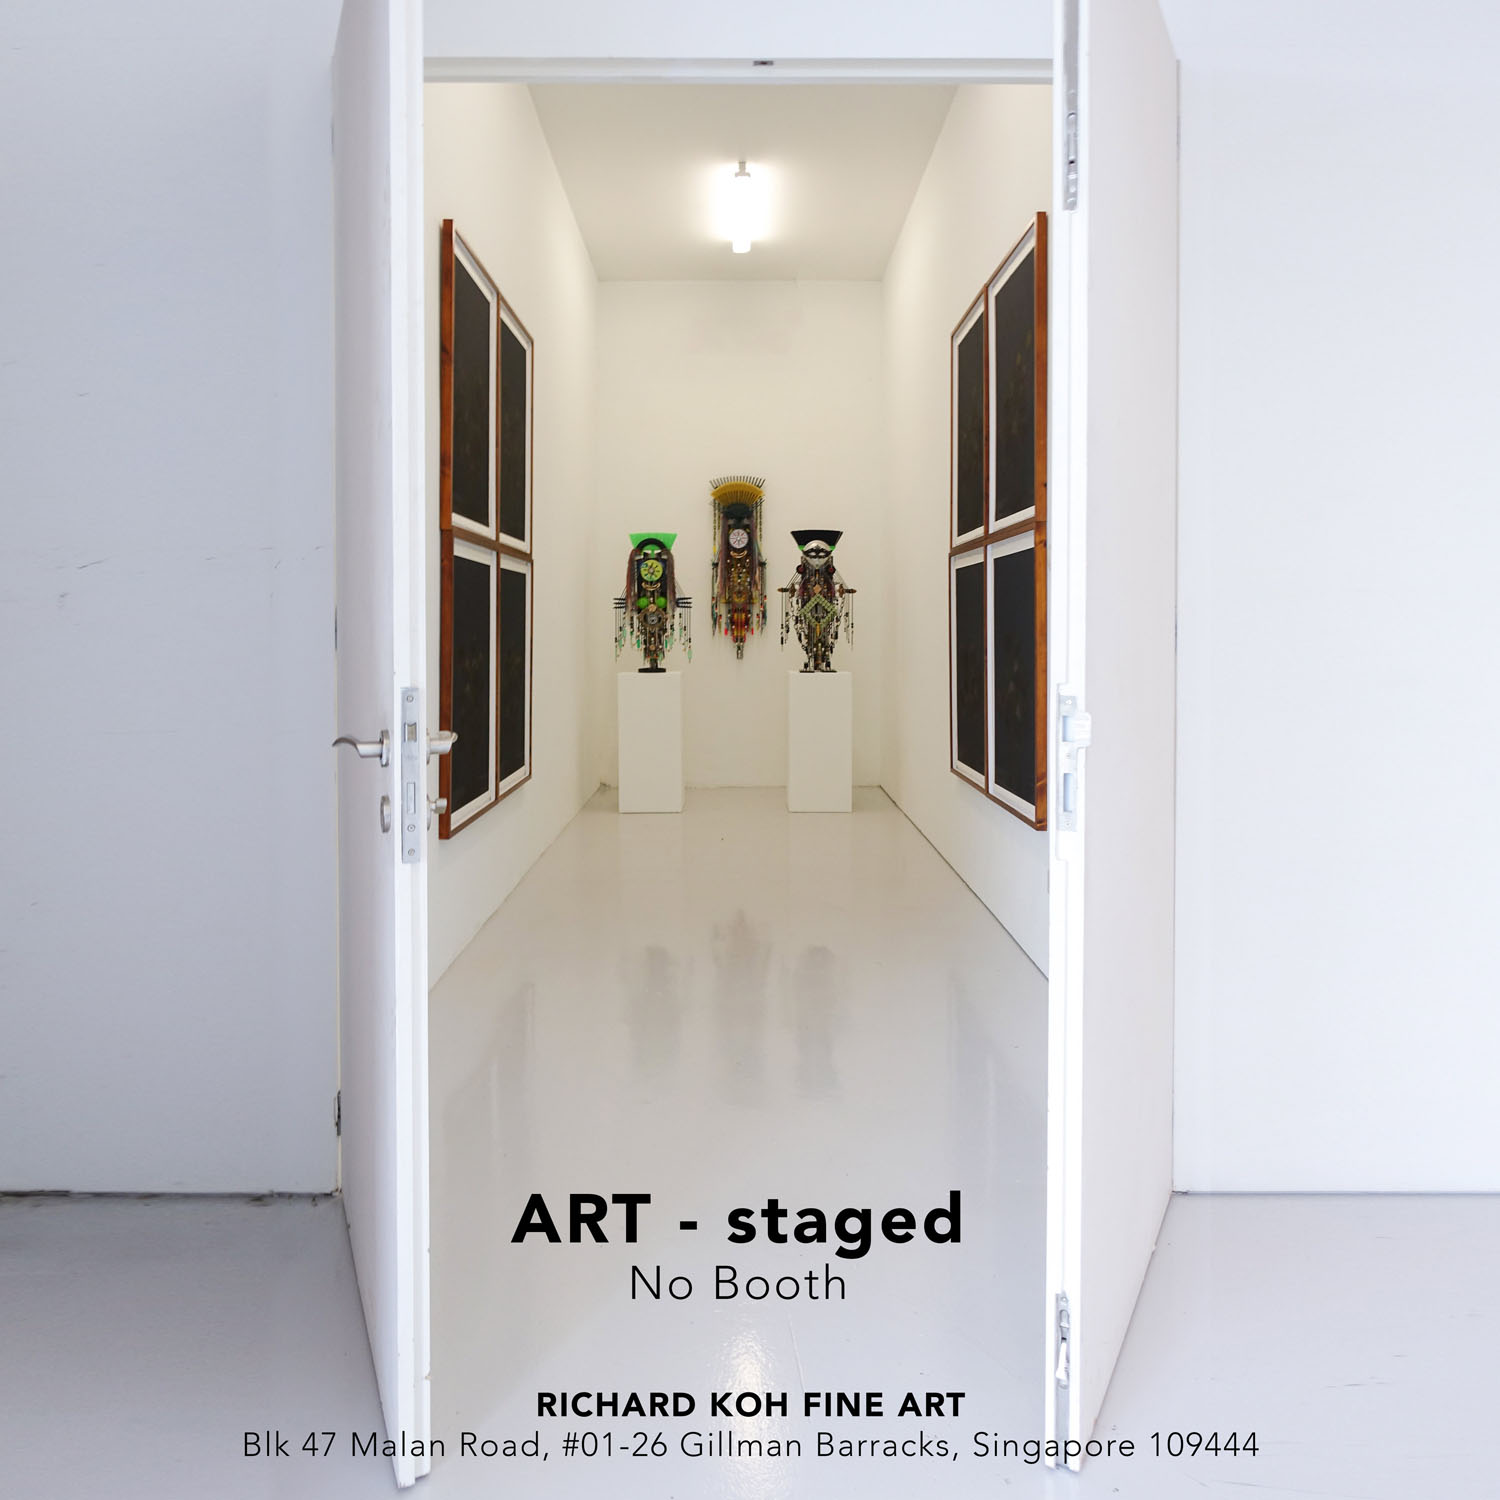 ART – staged : No Booth